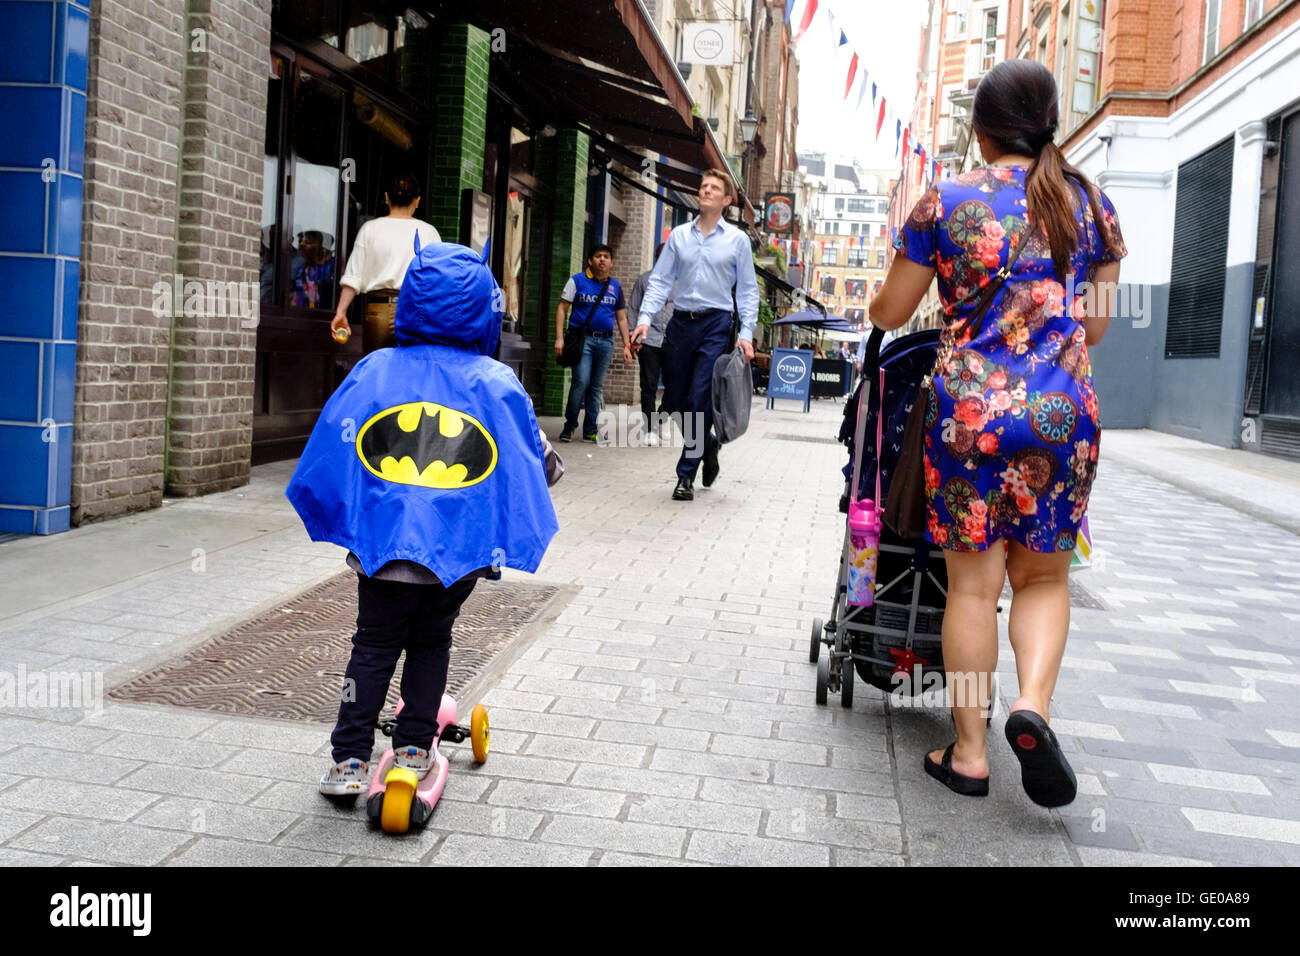 Child dressed in Batman cape accompanied by his mother pushing baby carriage in London street. - Stock Image